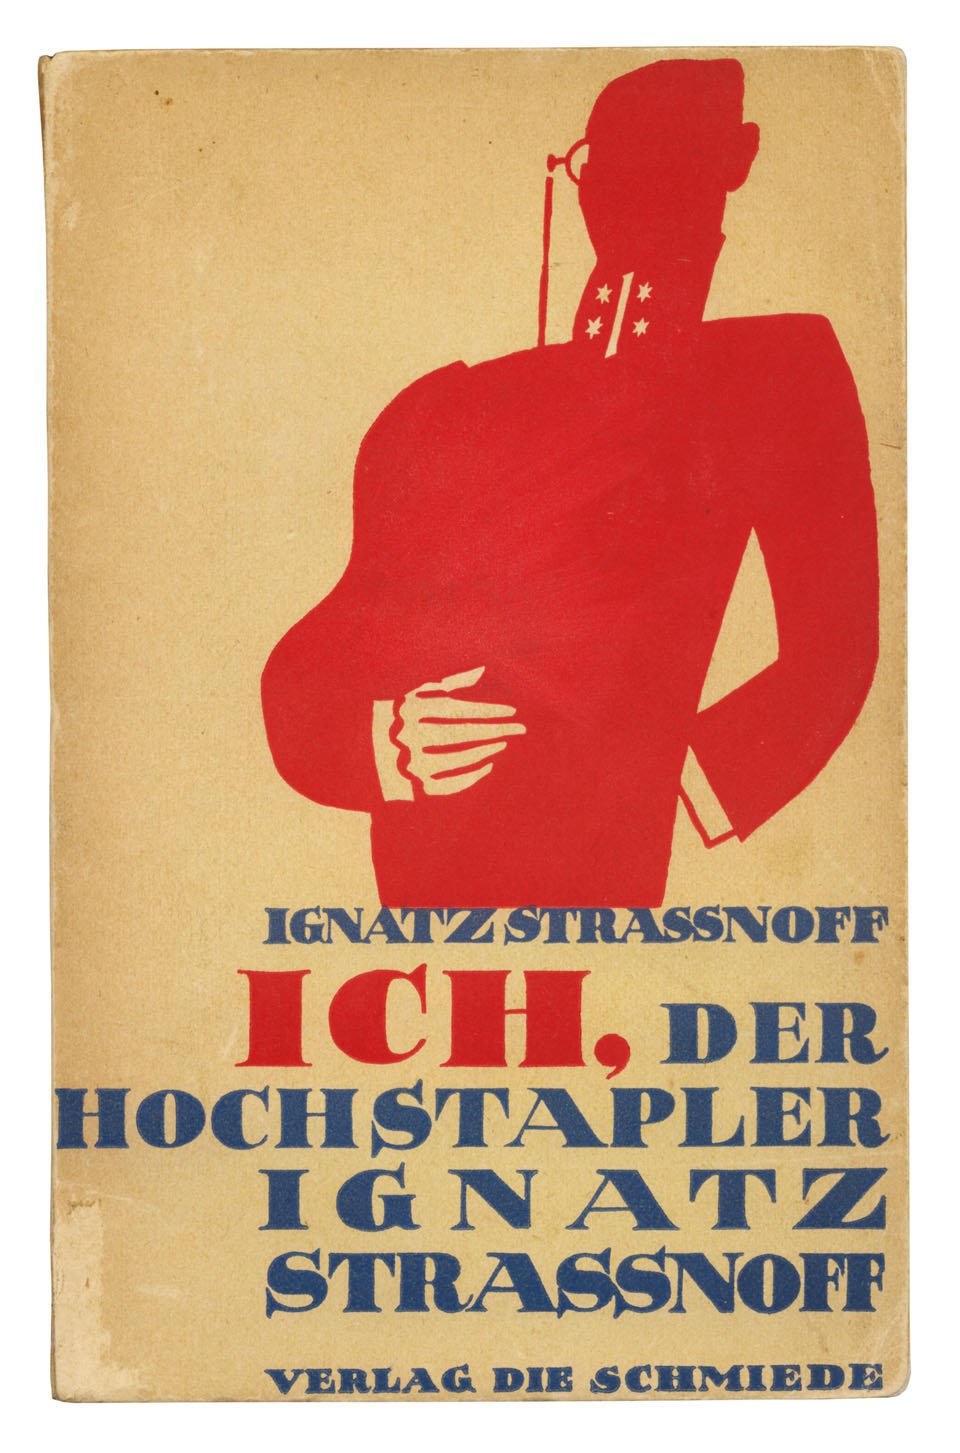 001c_book_covers_weimar_republic_va_04601_1504201439_id_947053